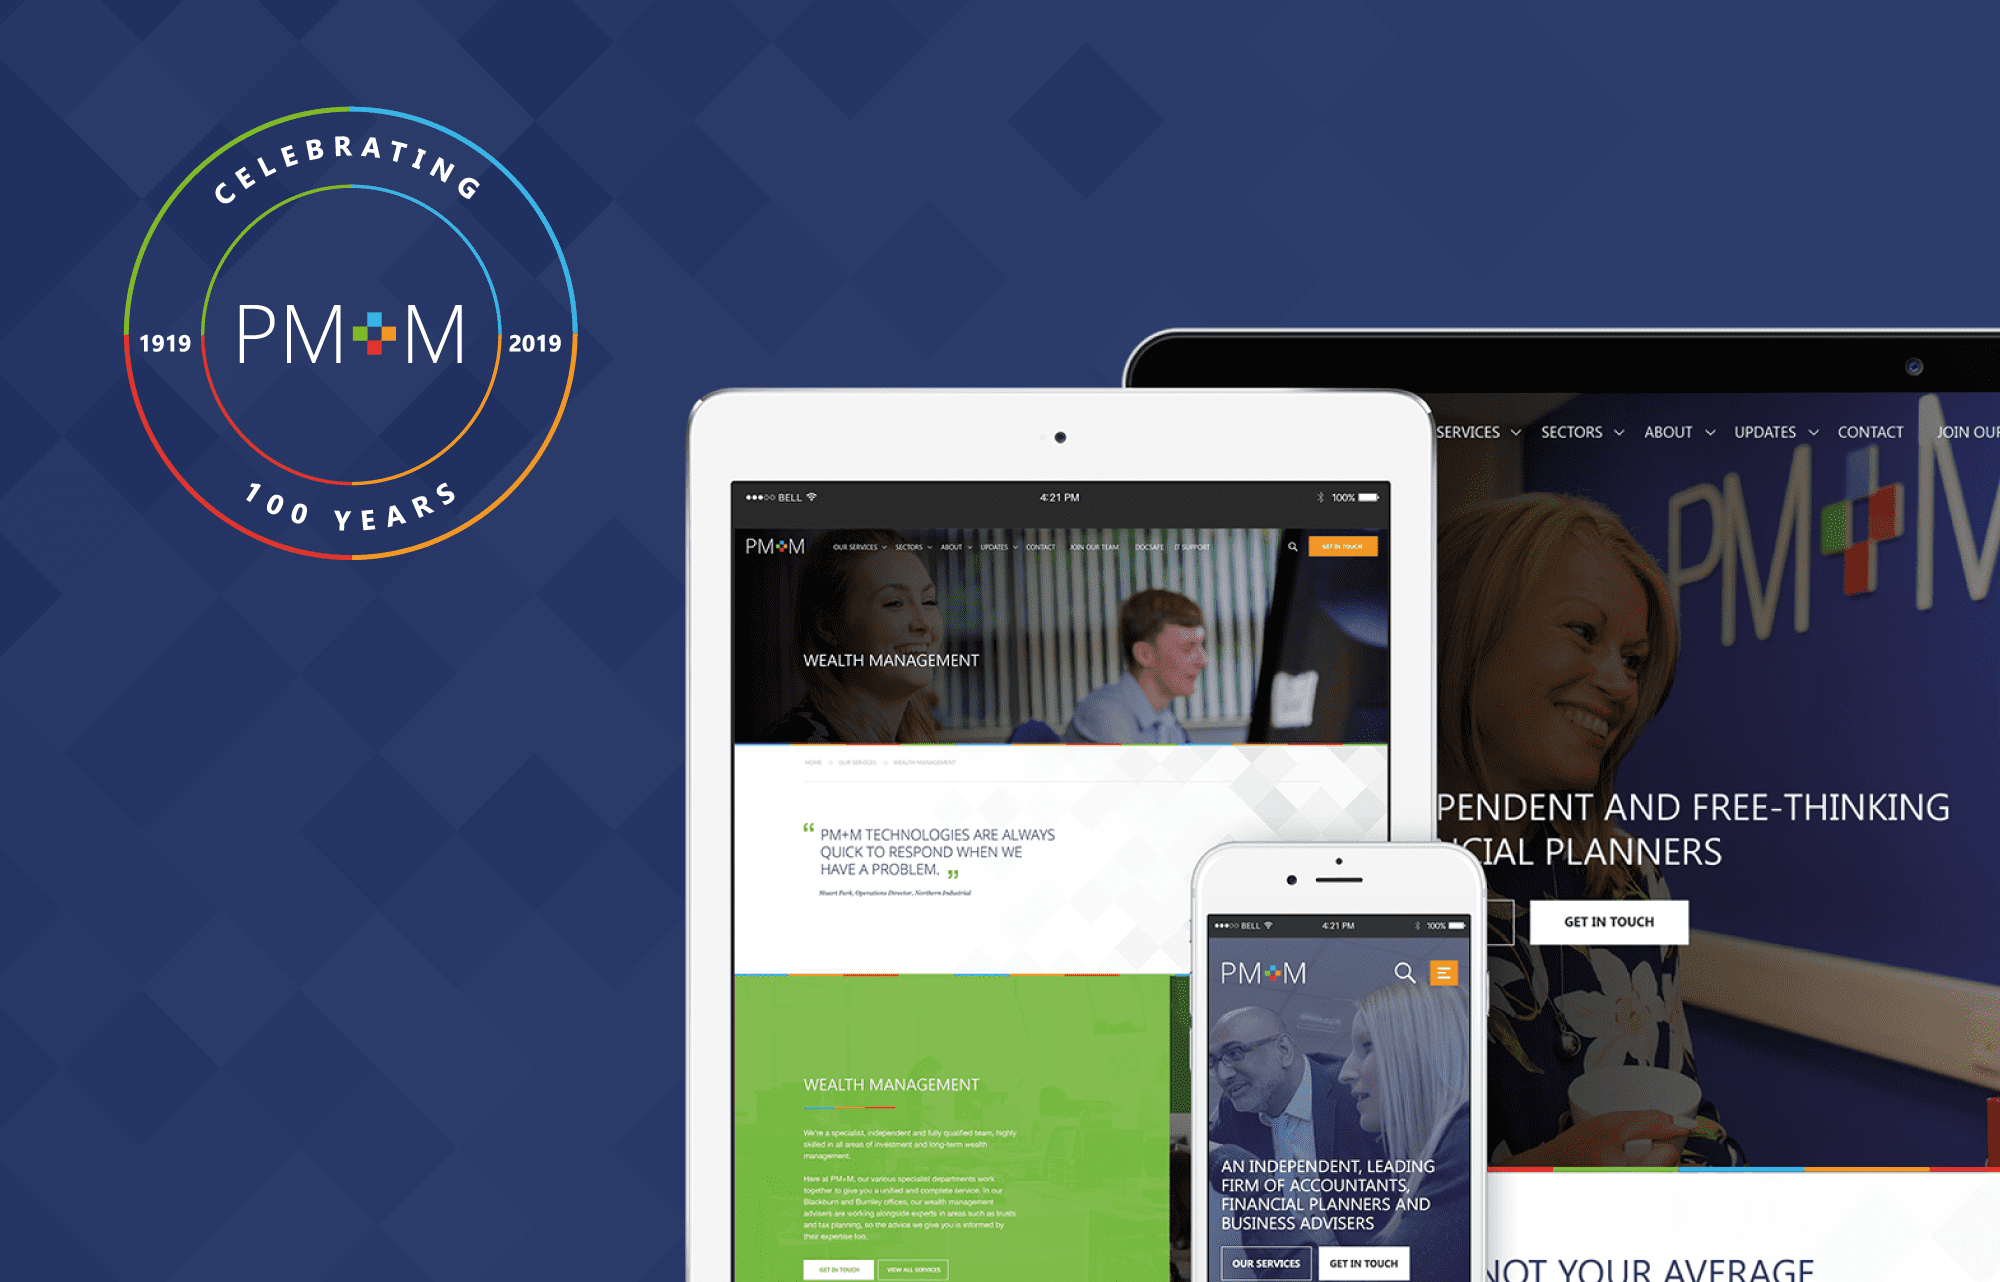 Pm+m celebrates its centenary with new website crafted by 21digital